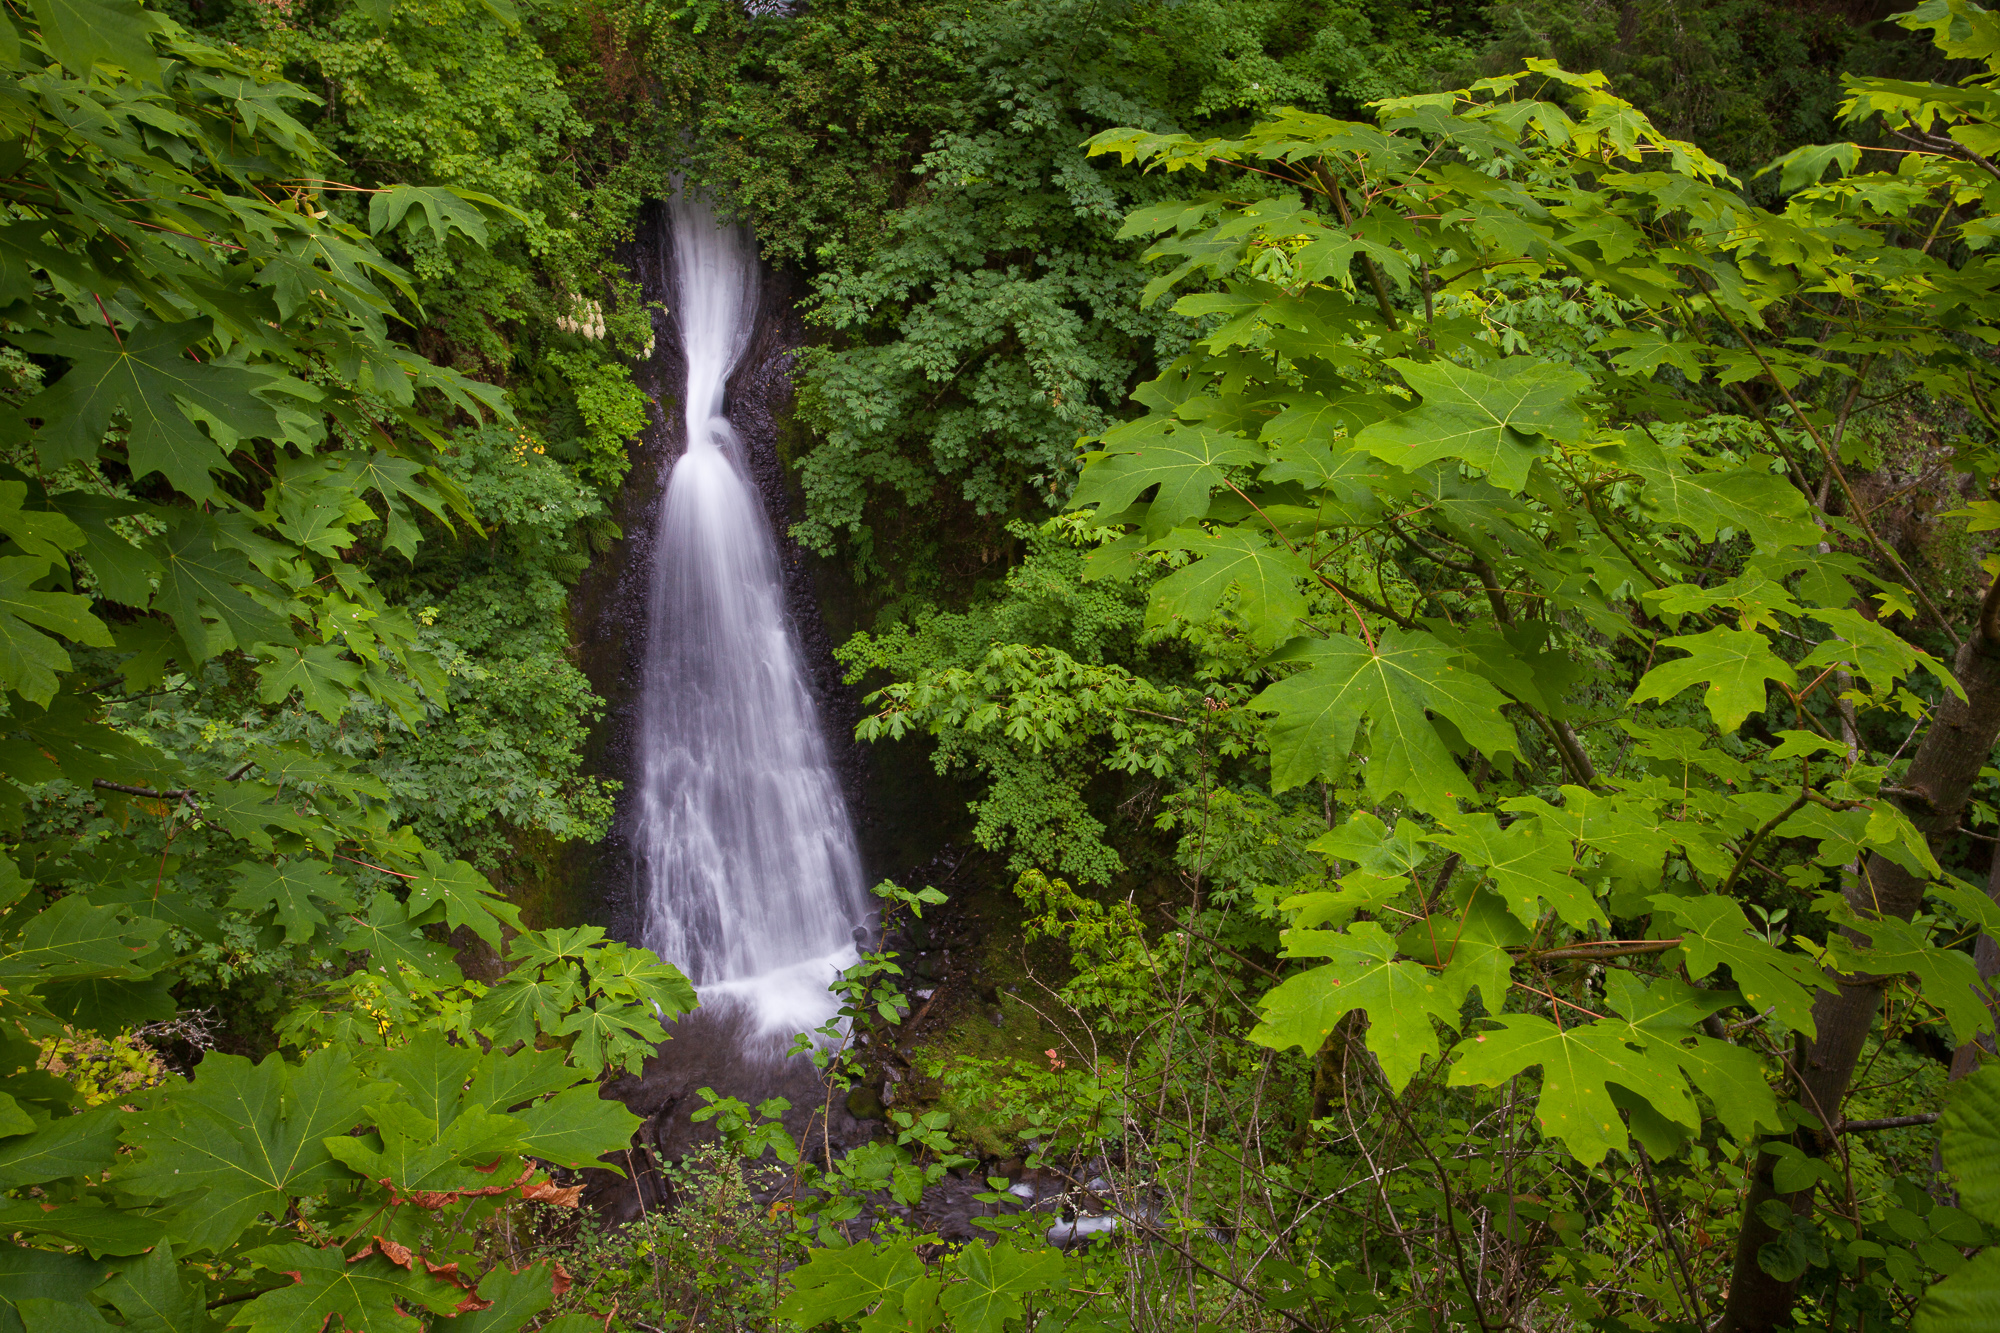 Shepperds Dell Falls empties into a narrow canyon overgrown with greenery, Columbia River Gorge, Oregon